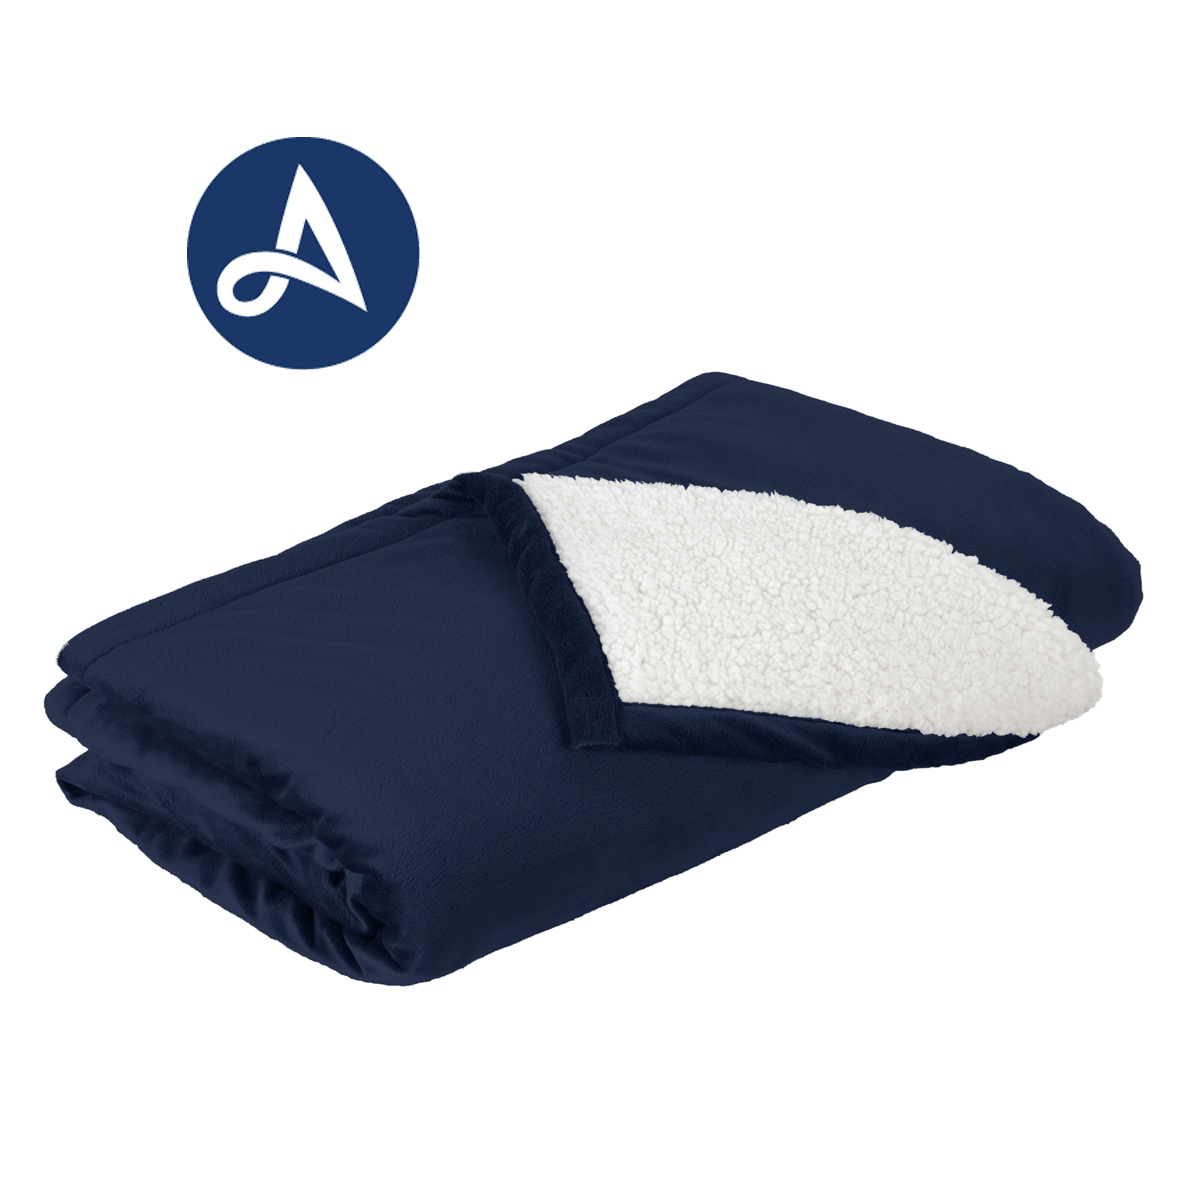 ALERION YACHTS - FLEECE BLANKET